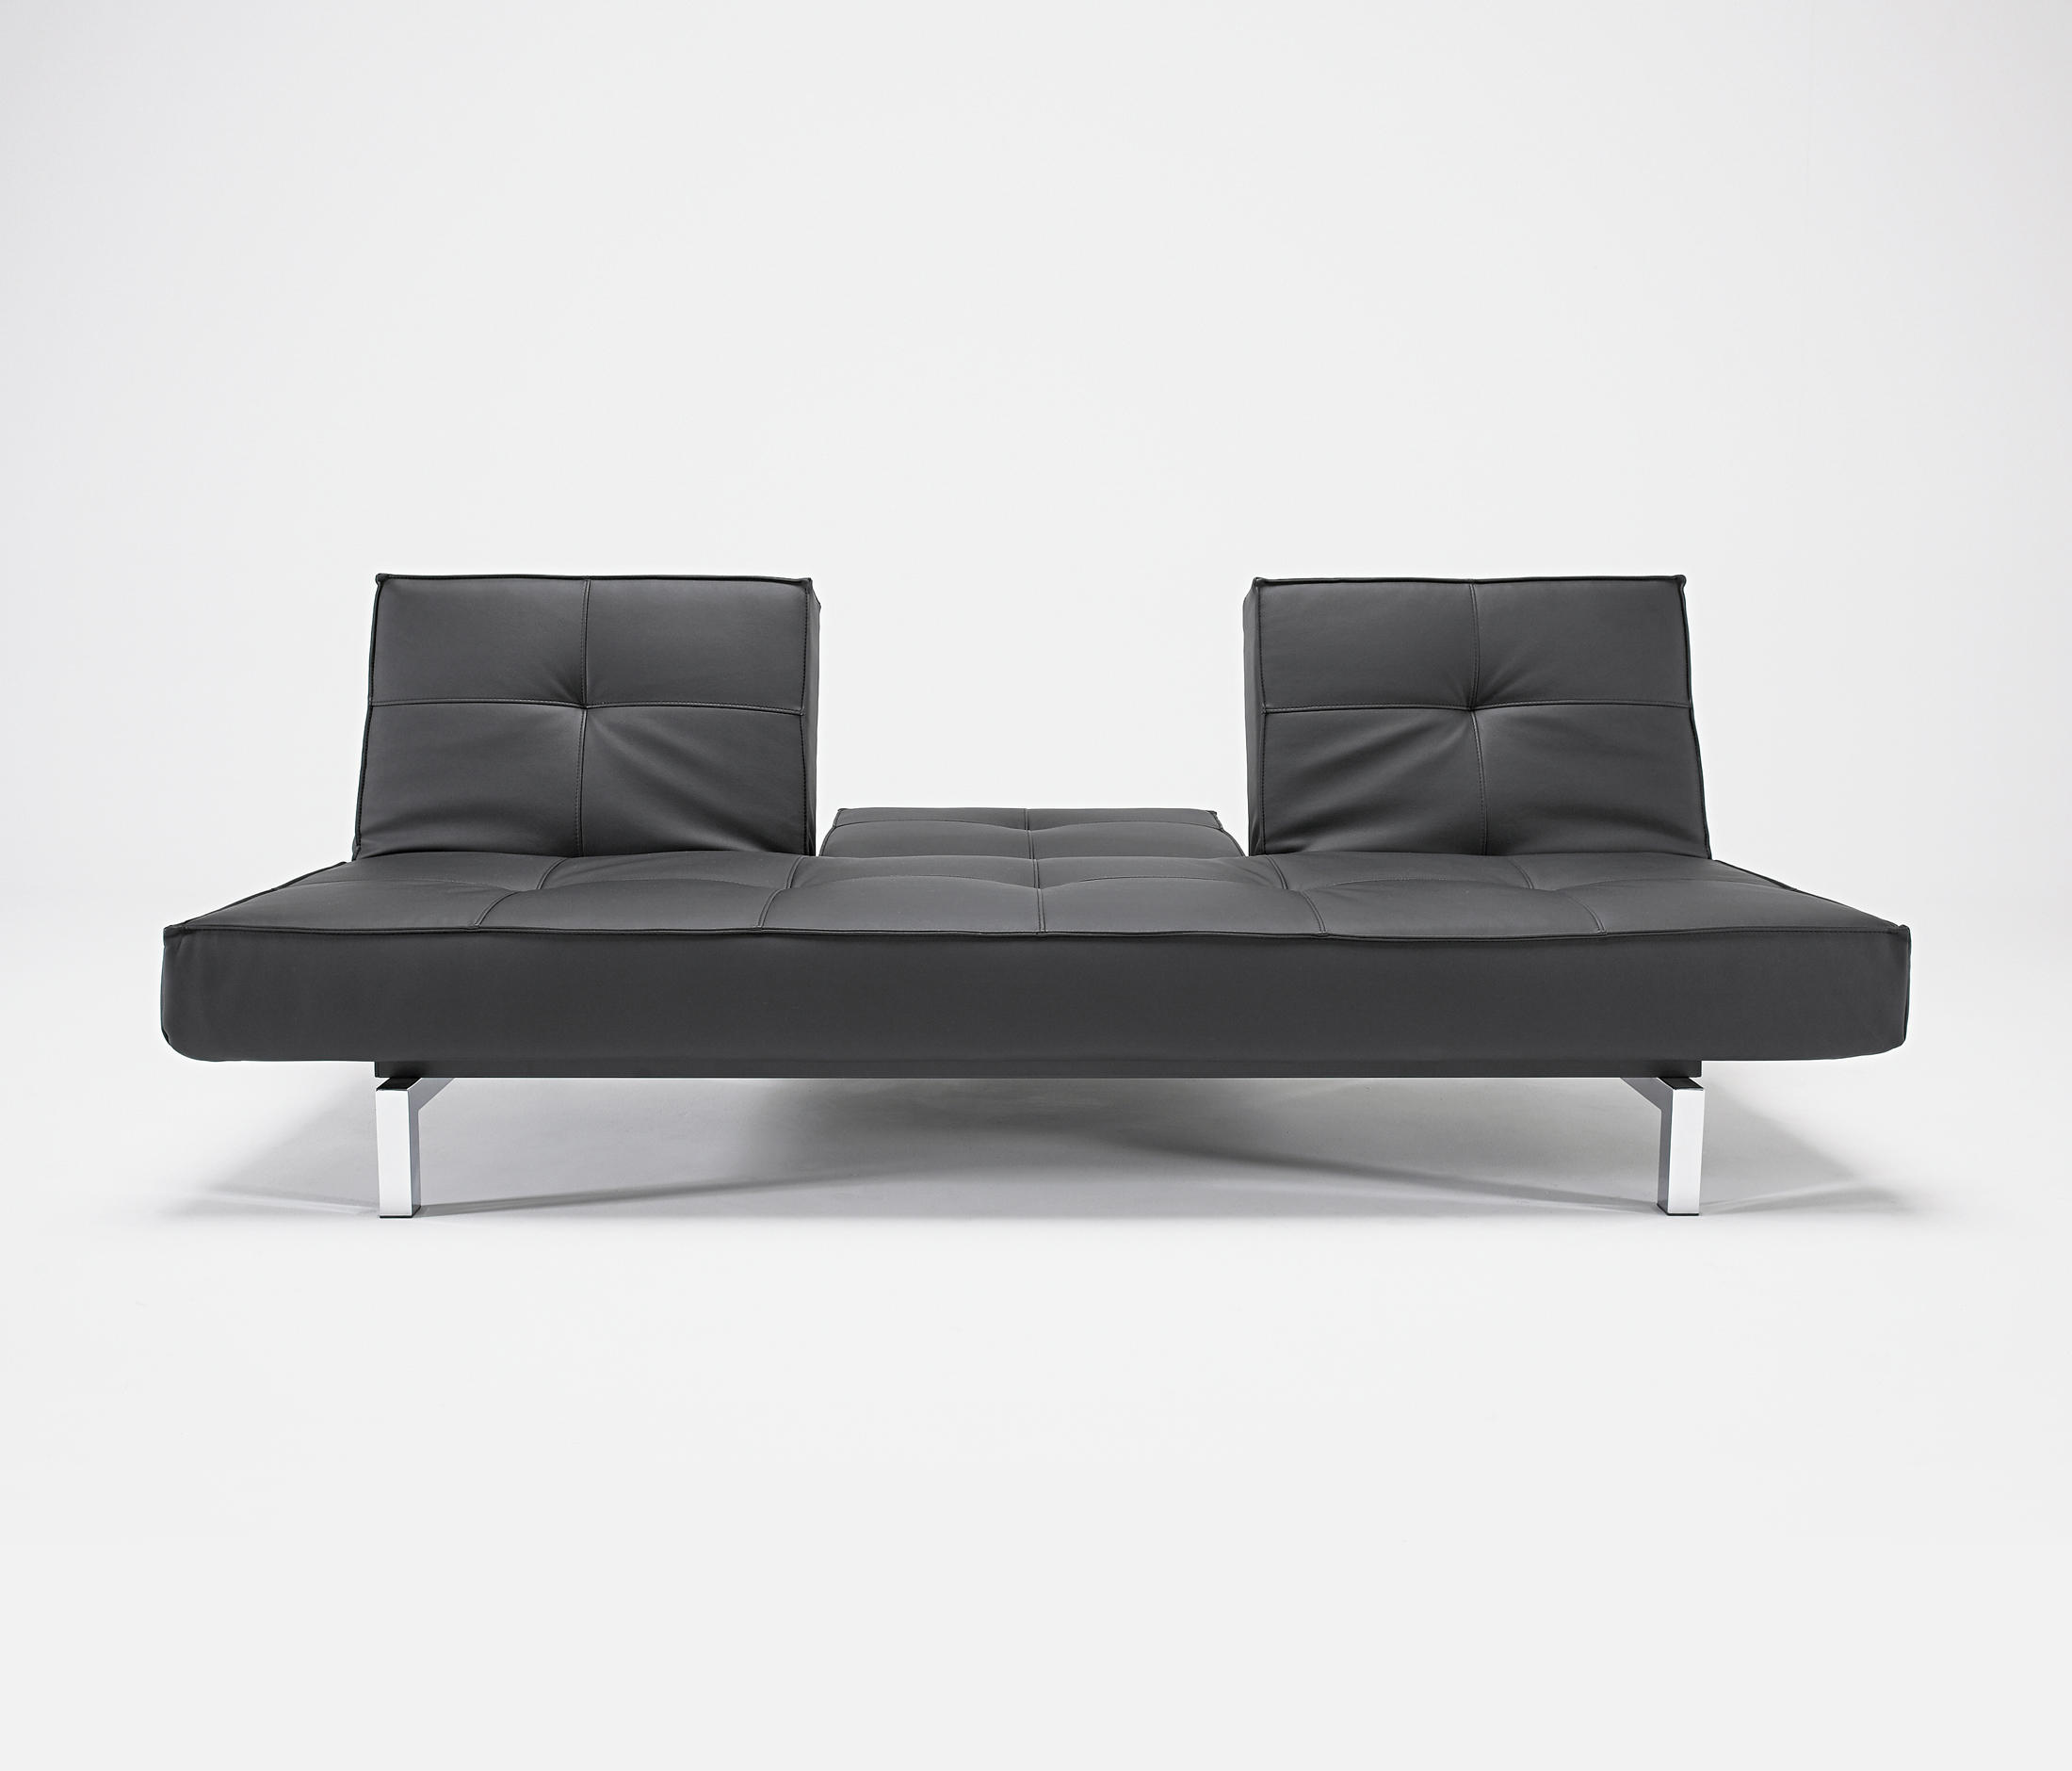 Tripleback Sofas Von Innovation Randers Architonic